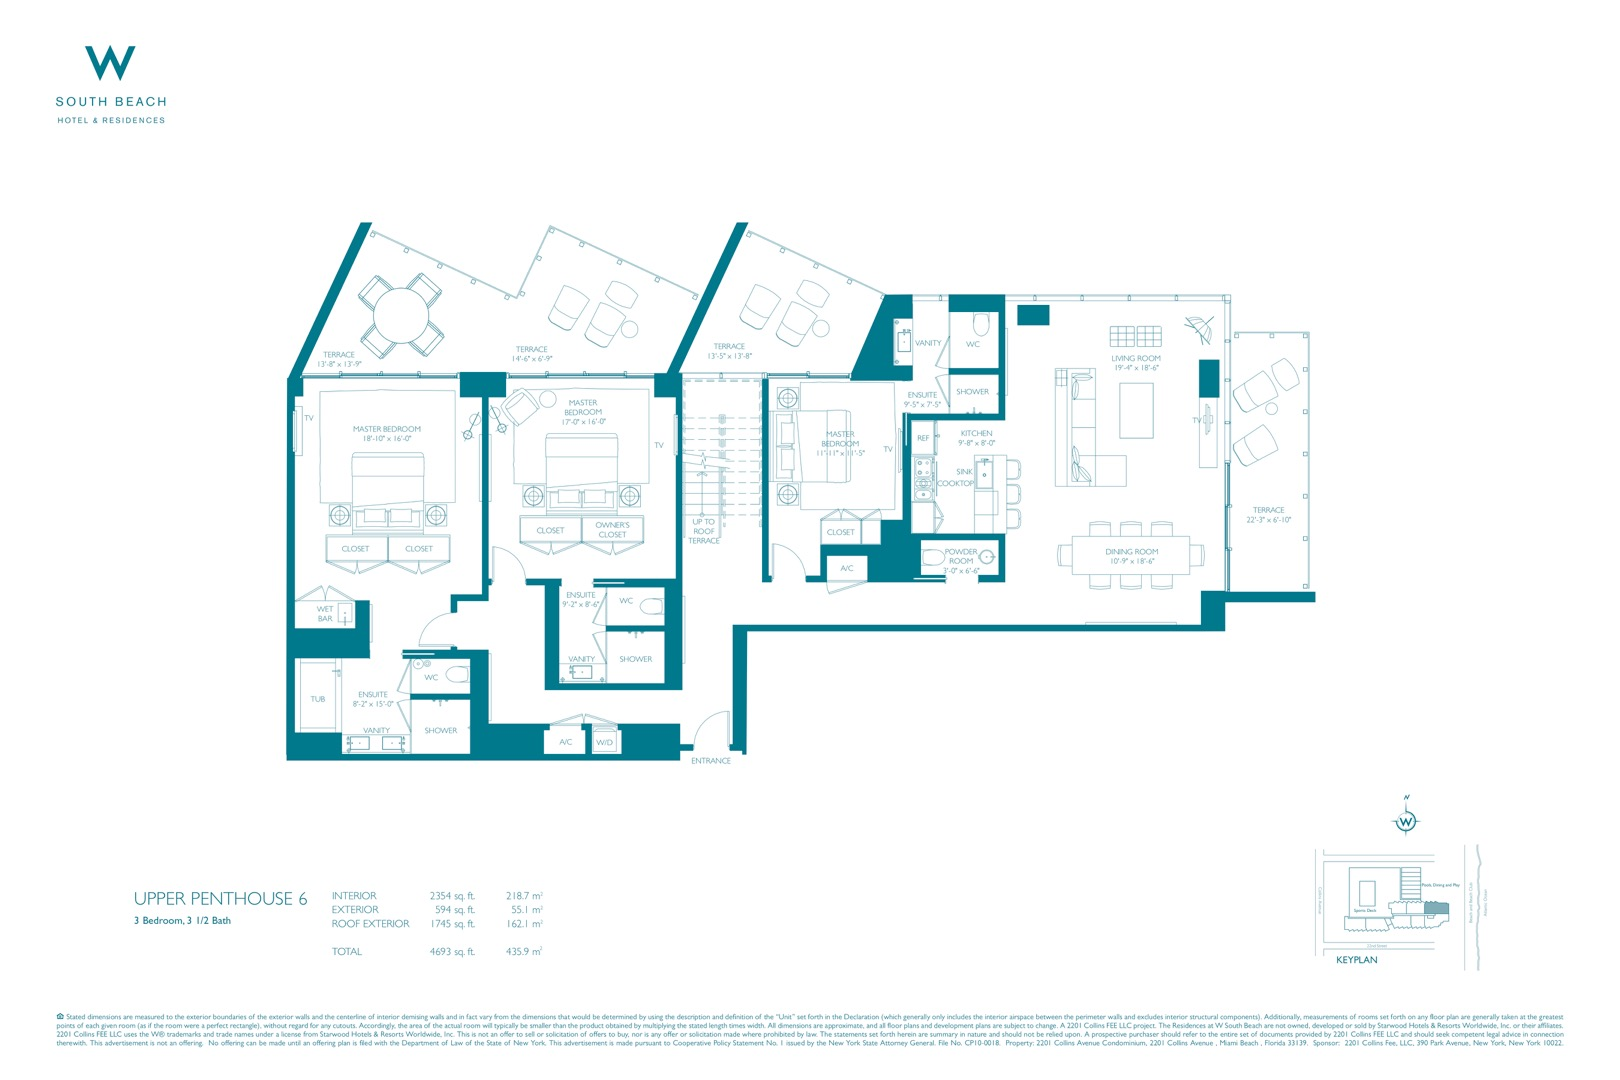 Floor plan image W South Beach Penthouse 6 - 3/3/1  - 5367 sqft image